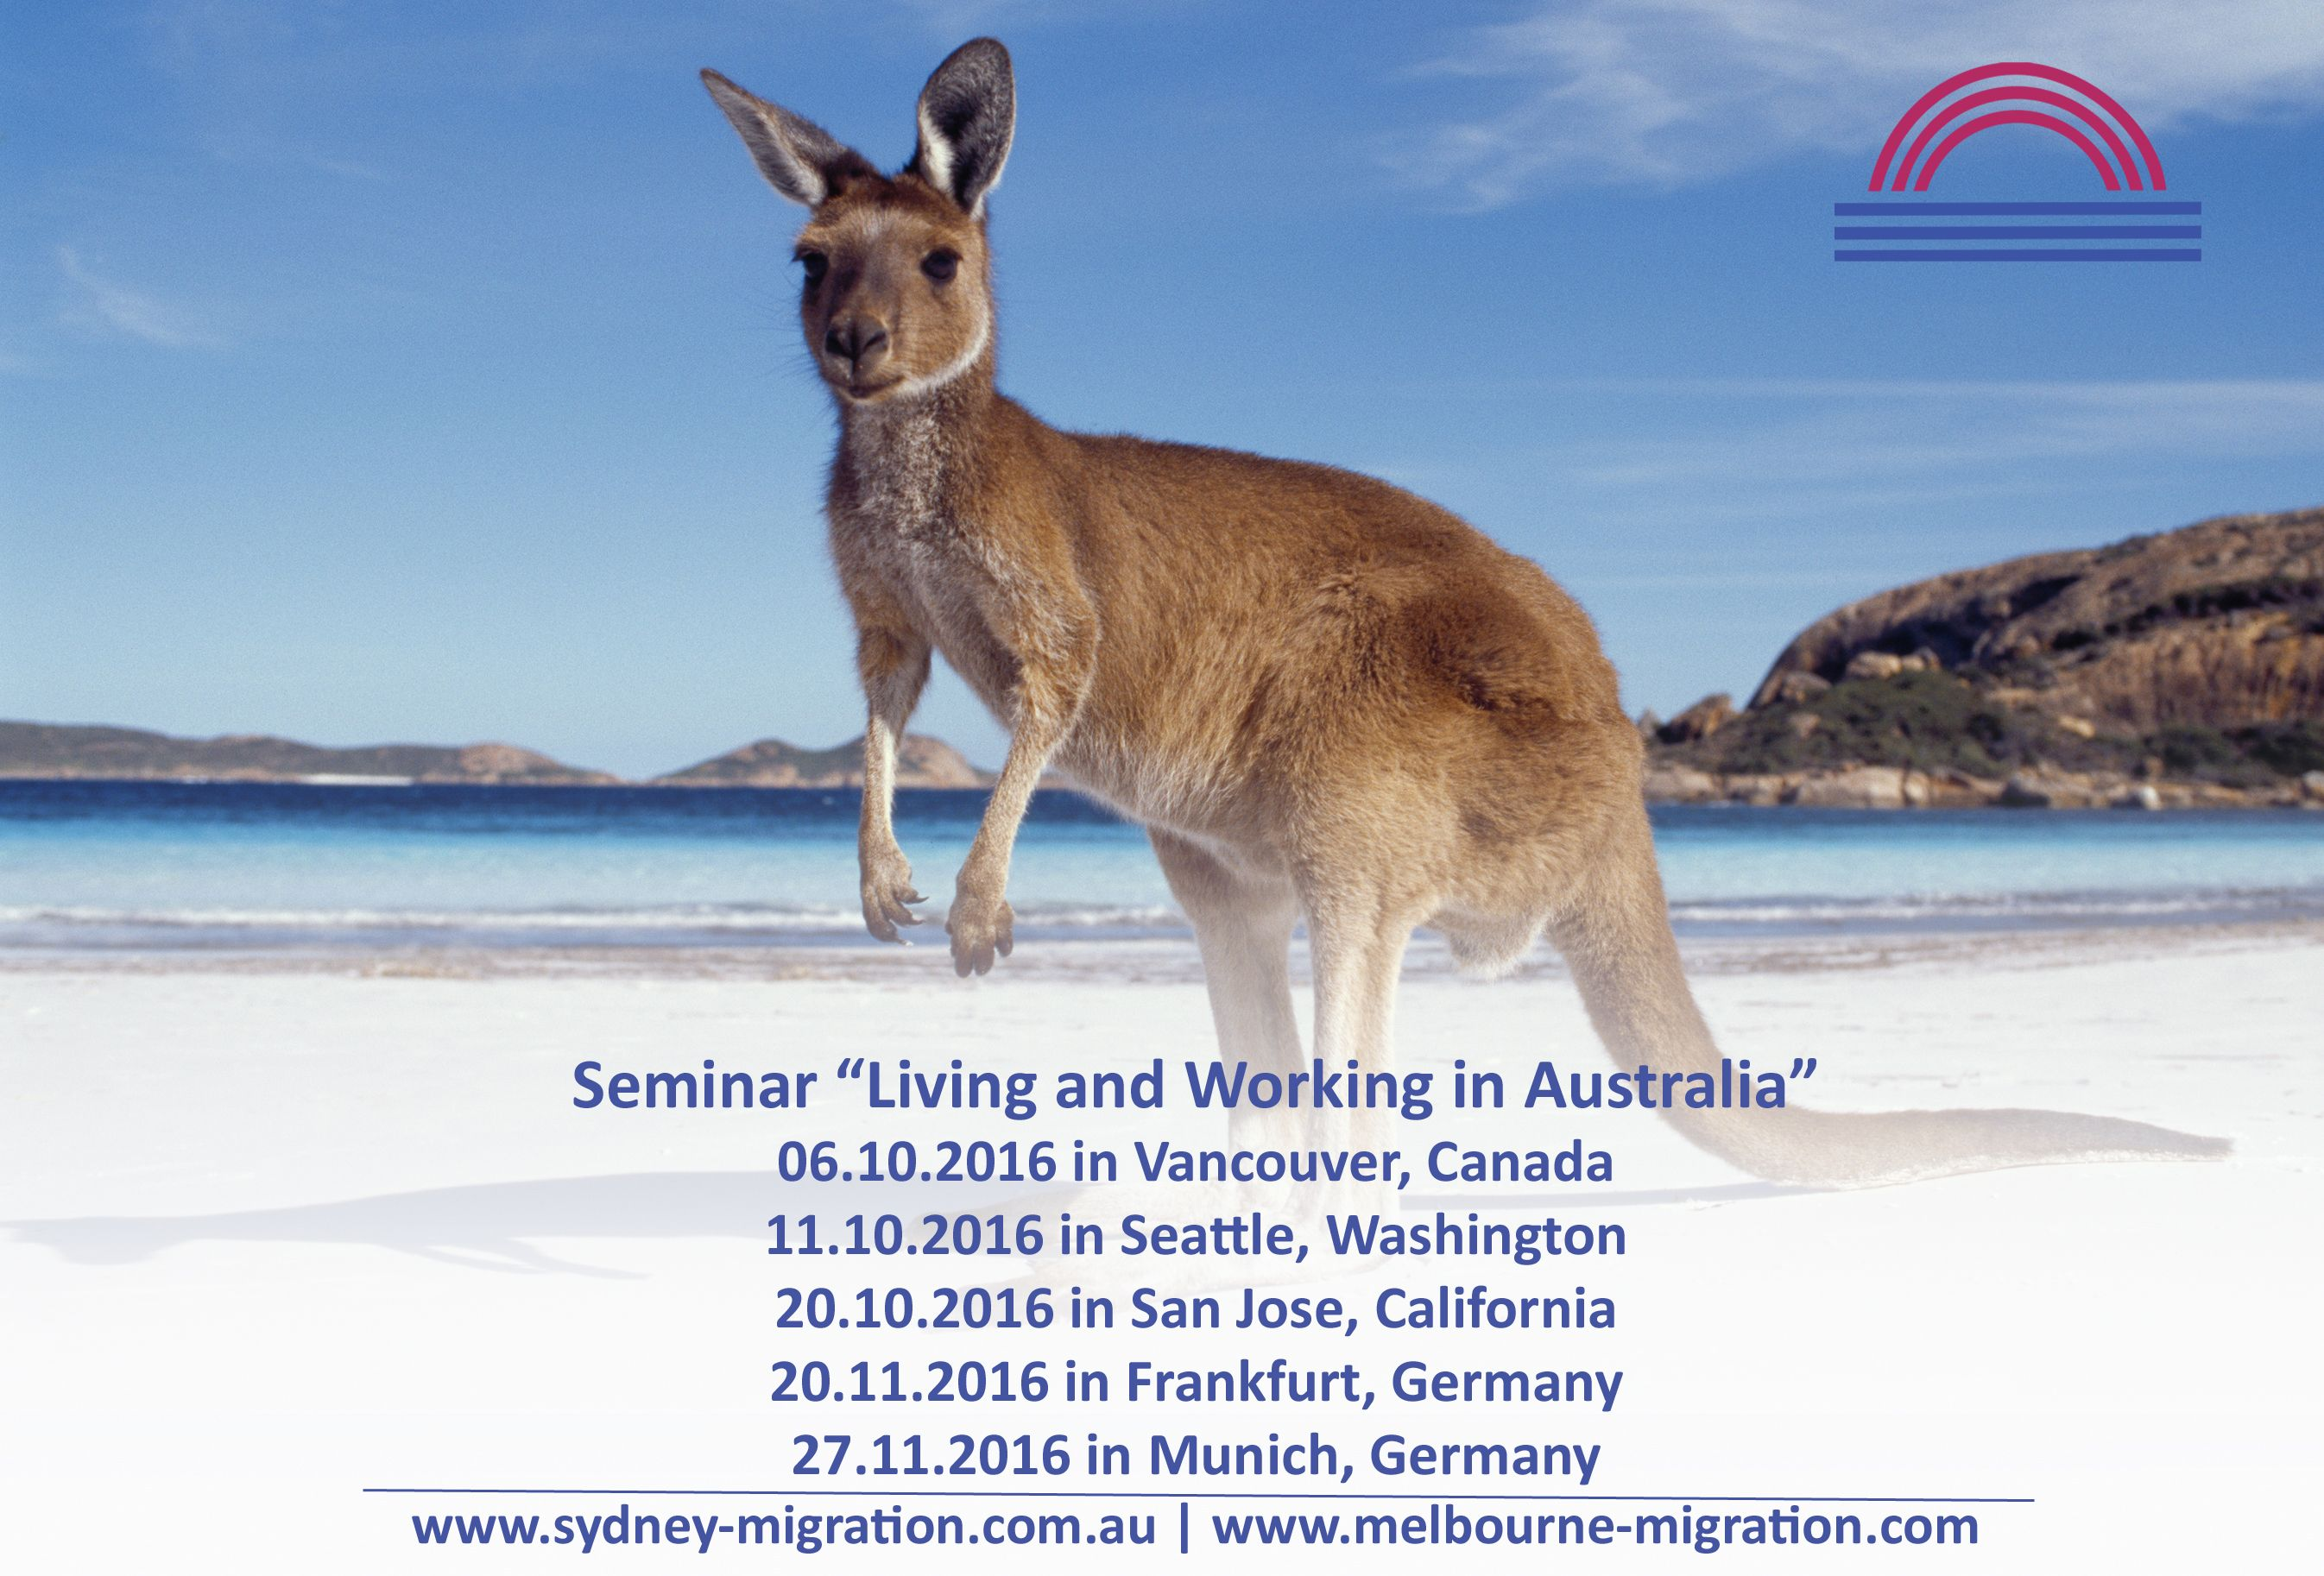 Auswandern Australien With Images